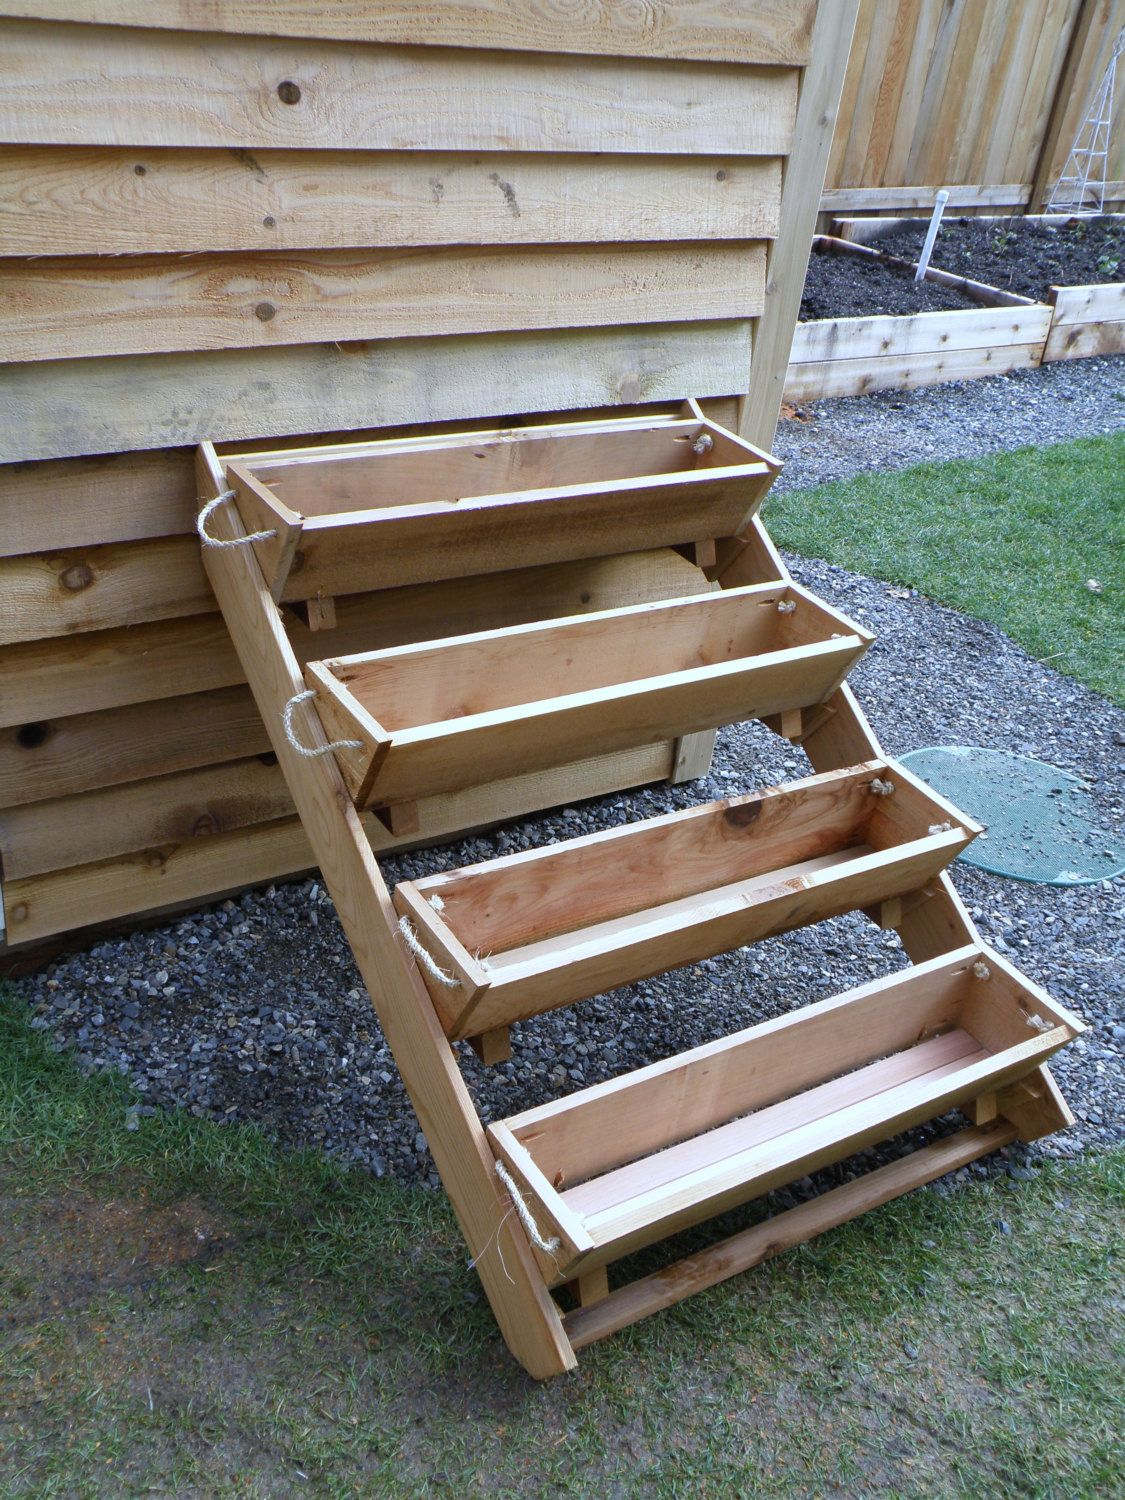 Large Planters Large Planter Box Cedar Planter Box Gardening Raised Bed Vegetable Gardening Kits Plant Vegetable Garden Raised Beds Garden Planter Boxes Garden Boxes